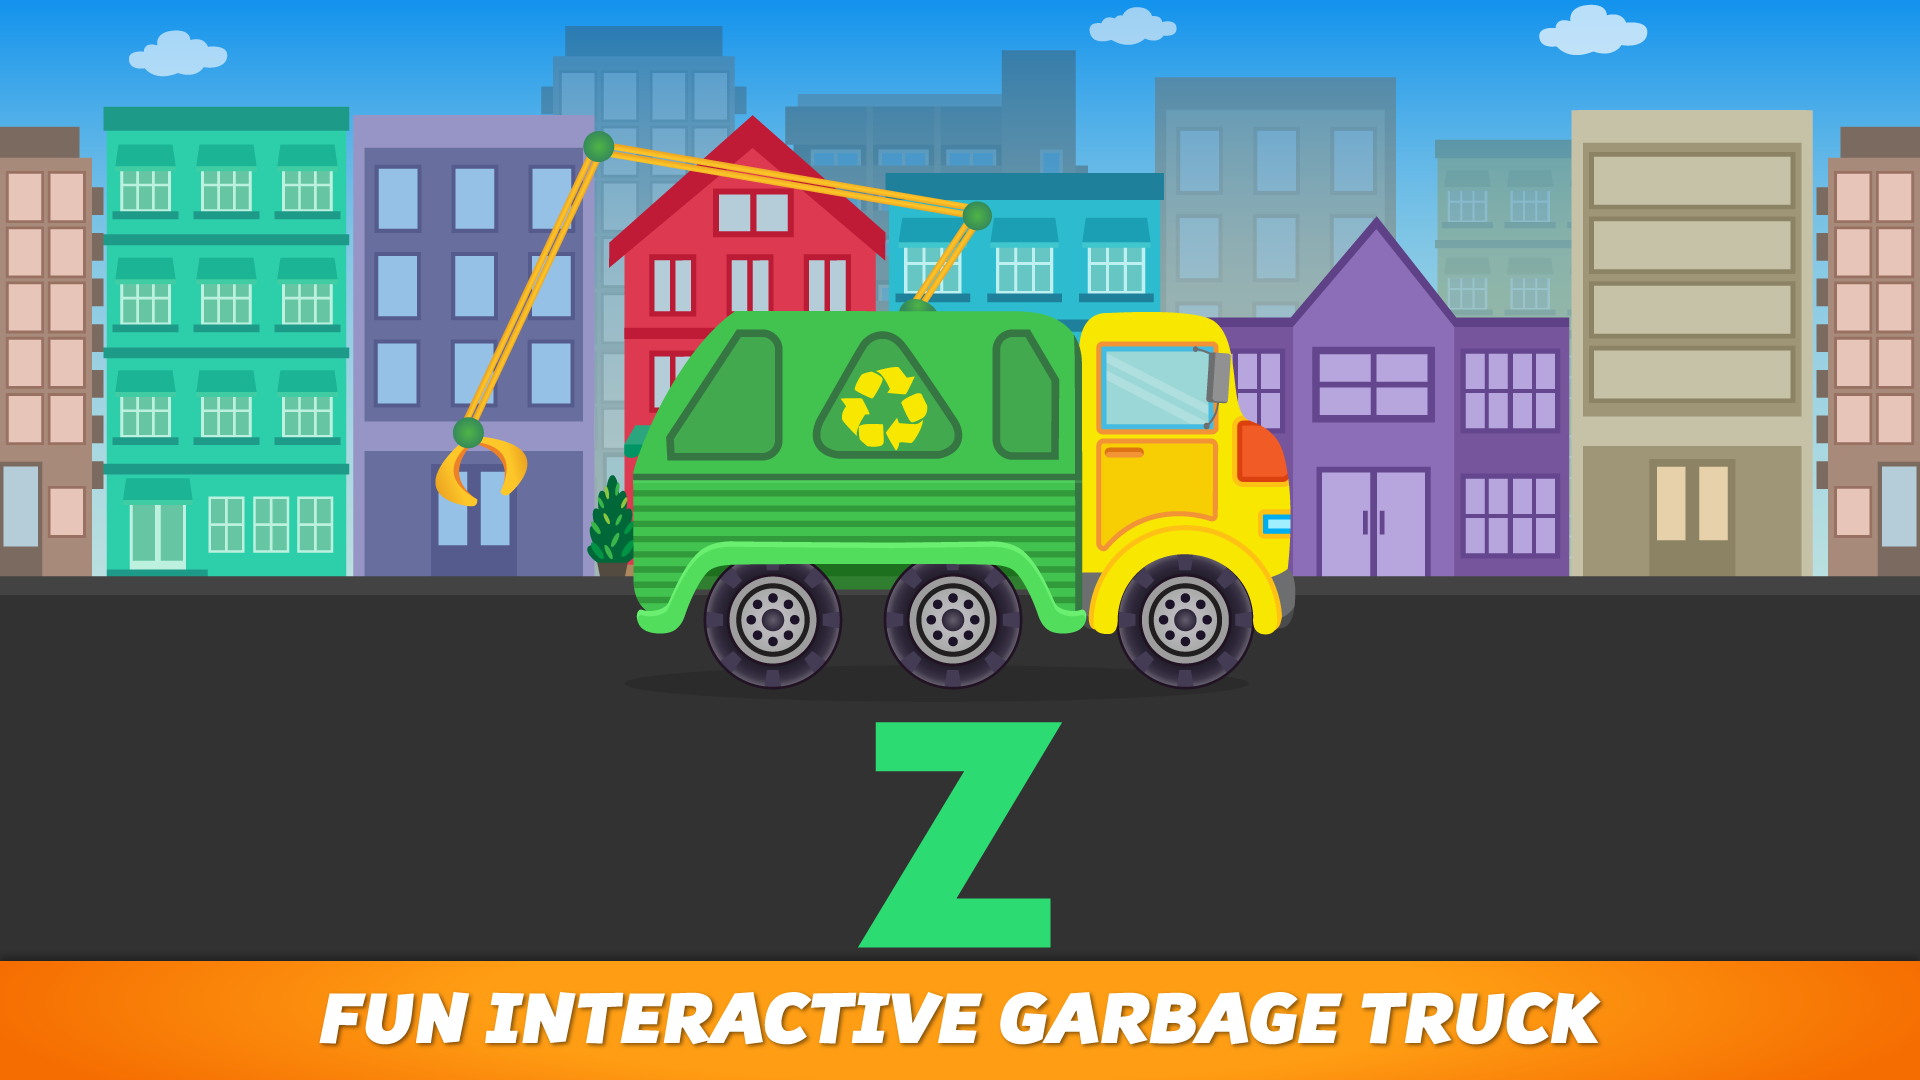 ABC Garbage Truck - Alphabet Fun Game for Preschool Toddler Kids Learning ABCs and Love Trucks and Things That Go screenshot 5